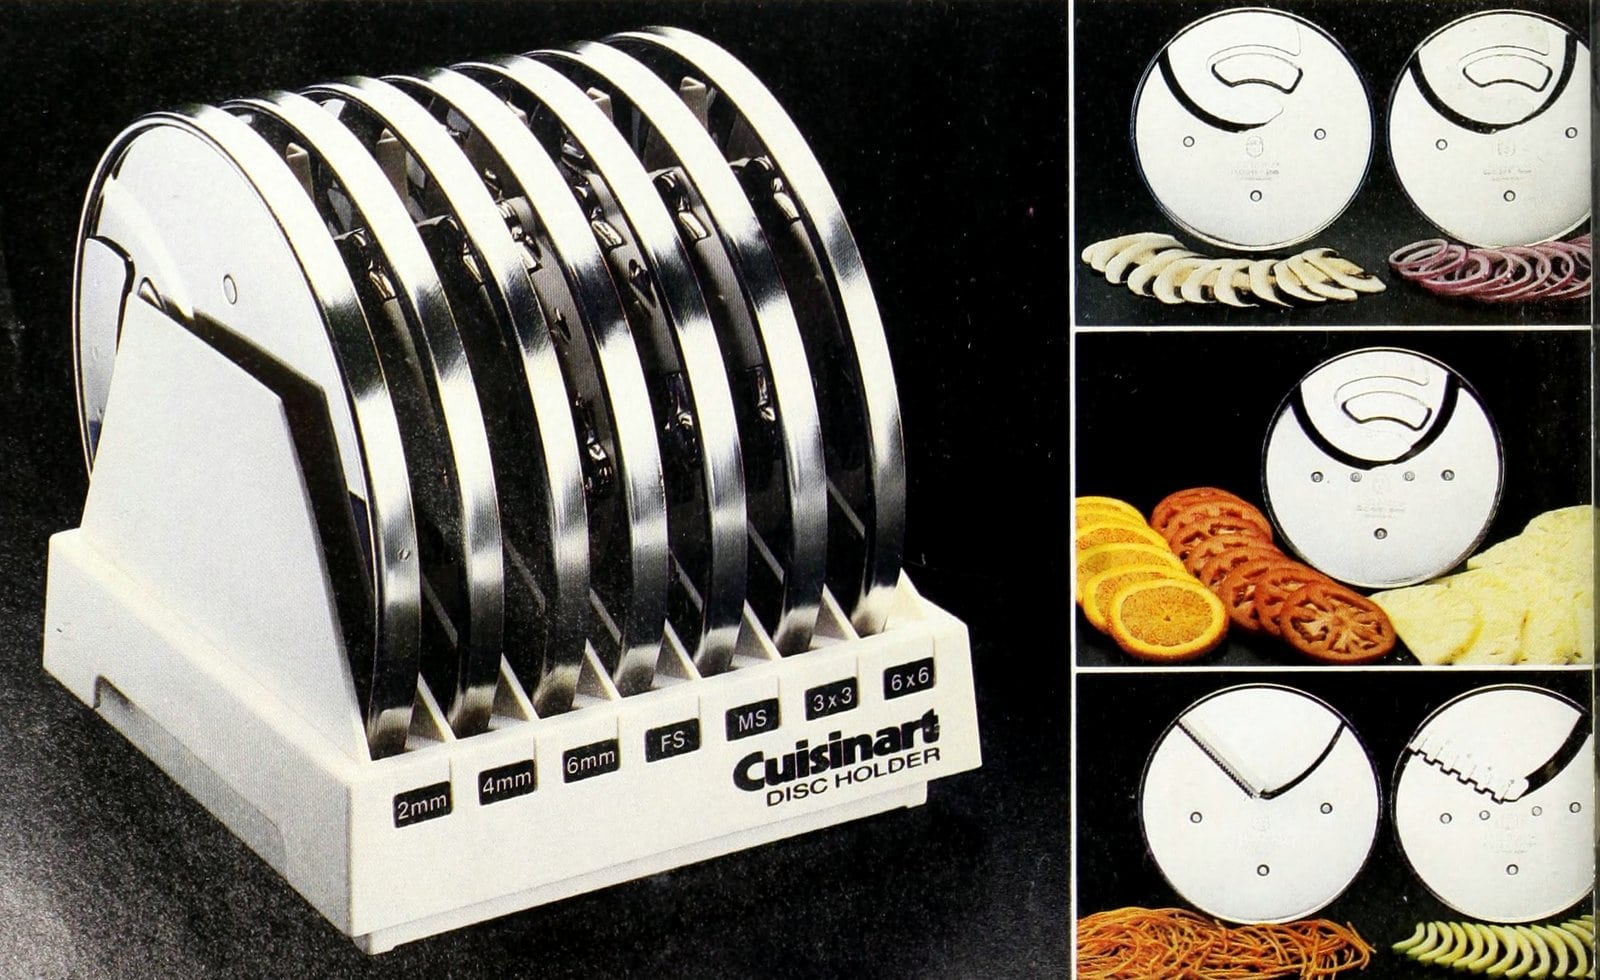 Vintage Cuisinart slicing blades from 1983